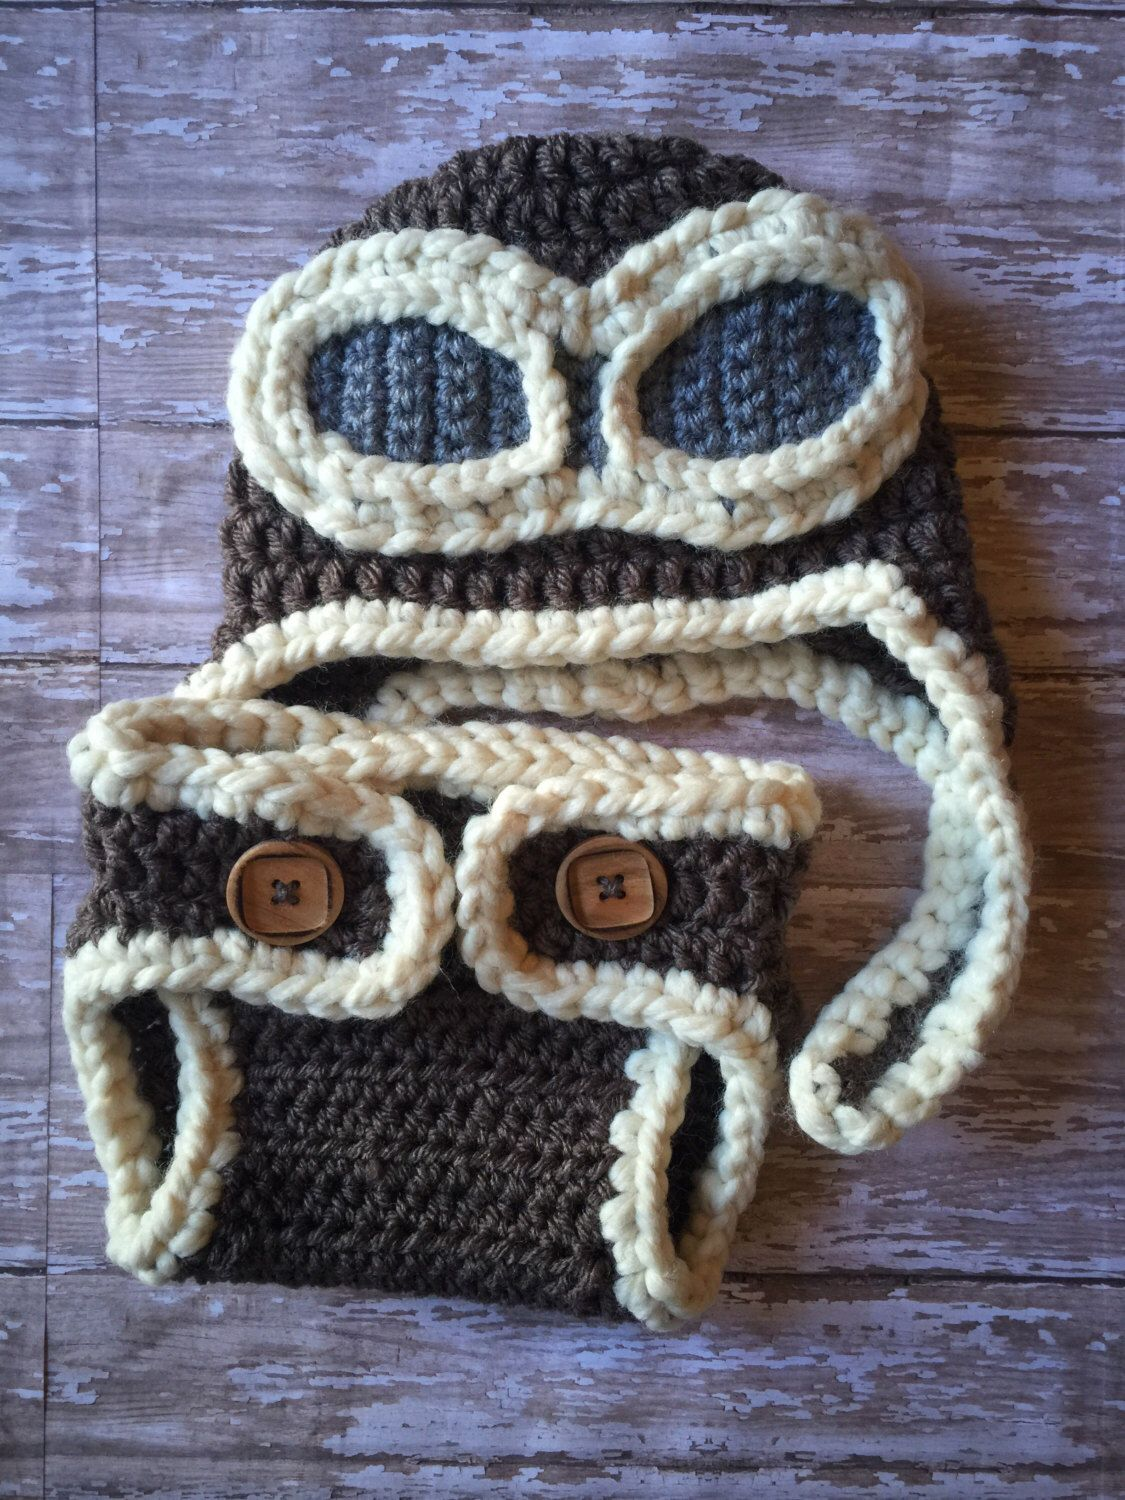 877c98d16 Pin by Rebecca Duffy on Babies!!! | Baby, Baby hats, Crochet baby